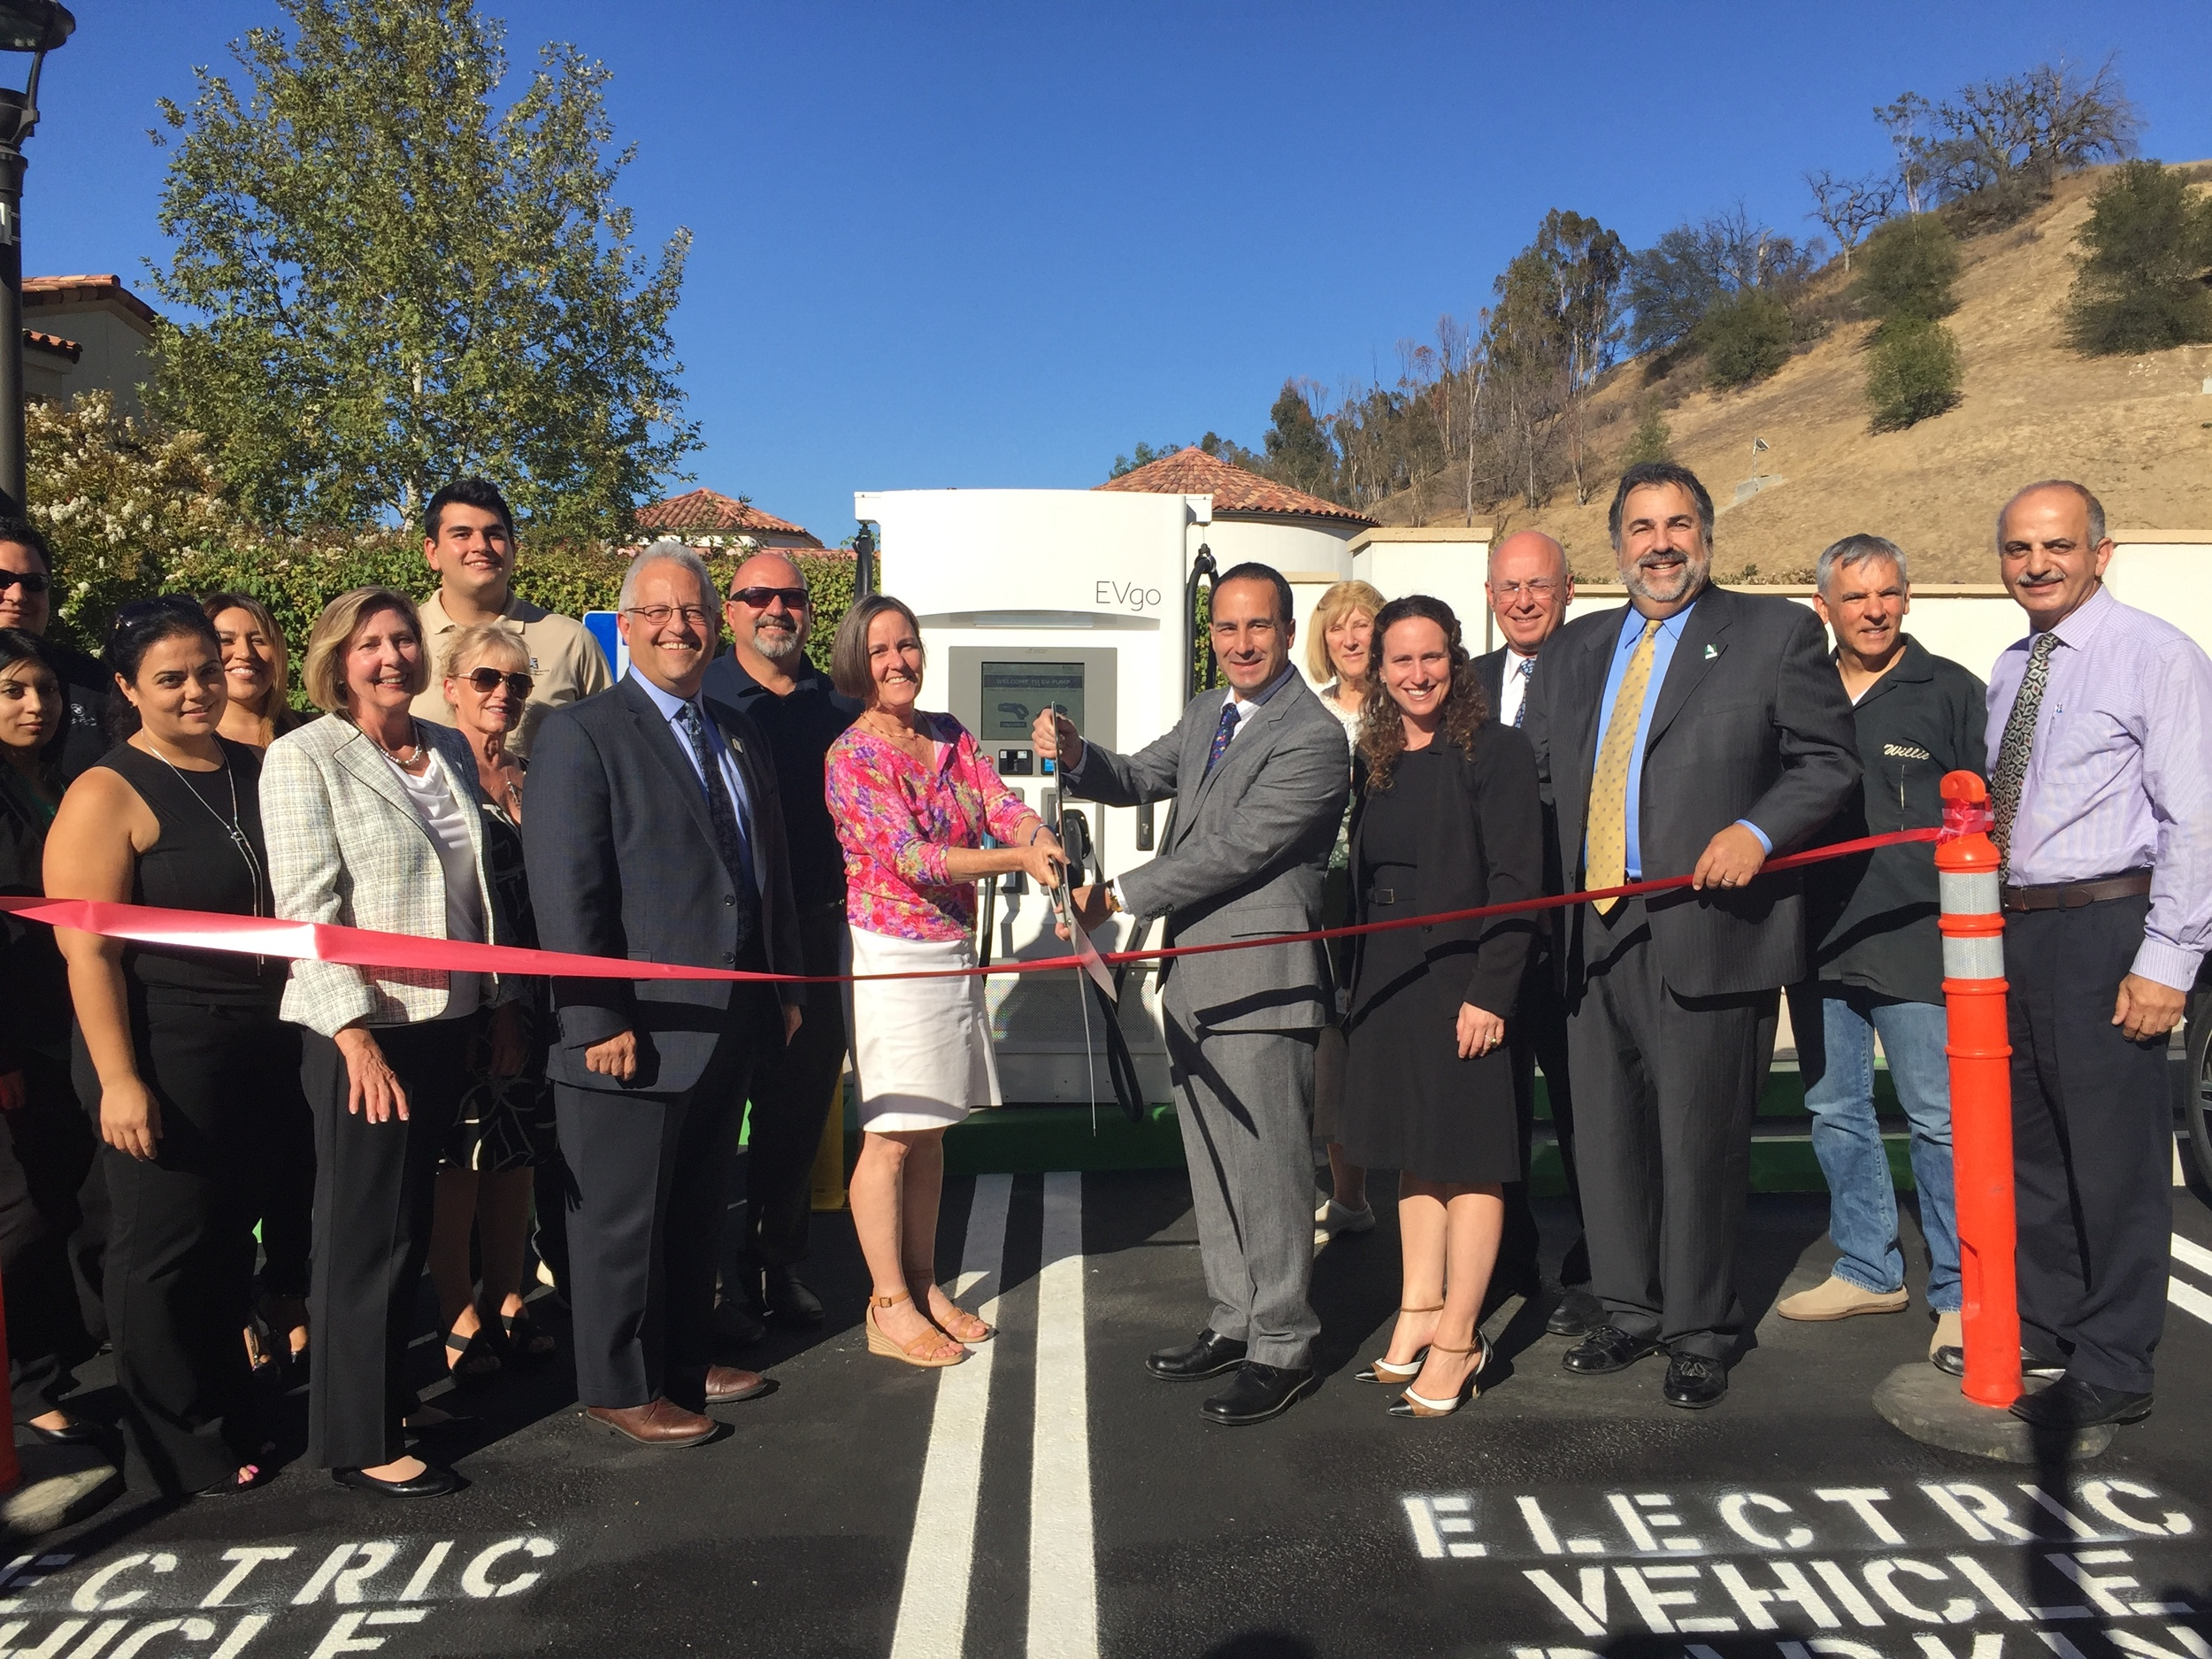 Calabasas Mayor James Bozajian cuts the ribbon at the first DCFC charging station opening on August 10, 2016 along with partners from the South Coast AQMD,NRG evGO, and the City of Calabasas.